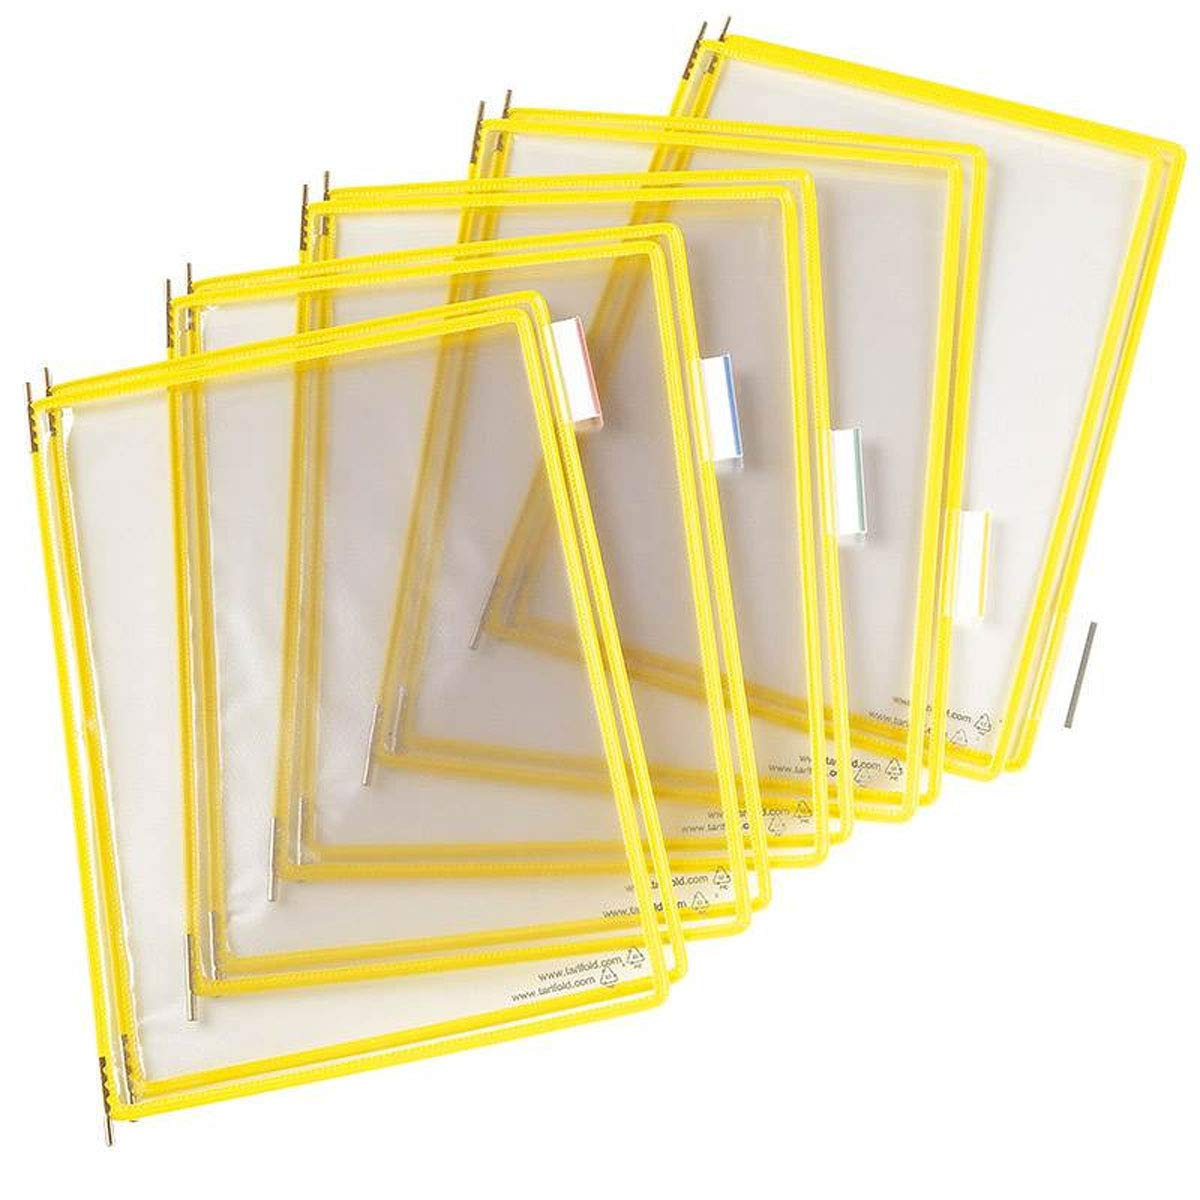 Tarifold P040 Pivoting Pockets for Wall, Desk or Rotary Systems, Yellow, 10/Pack